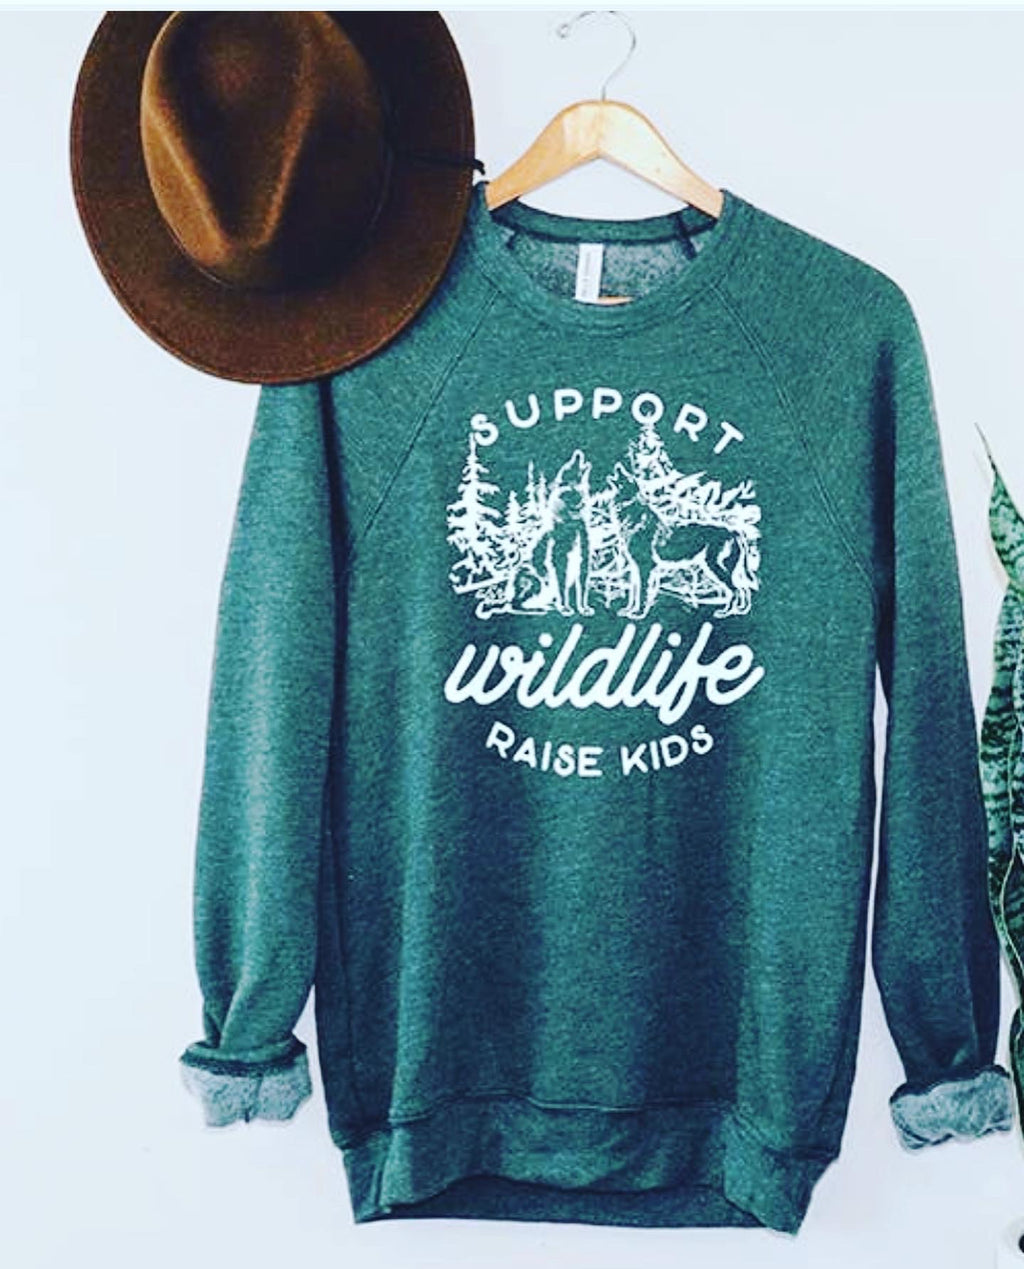 Raising kids sweatshirt